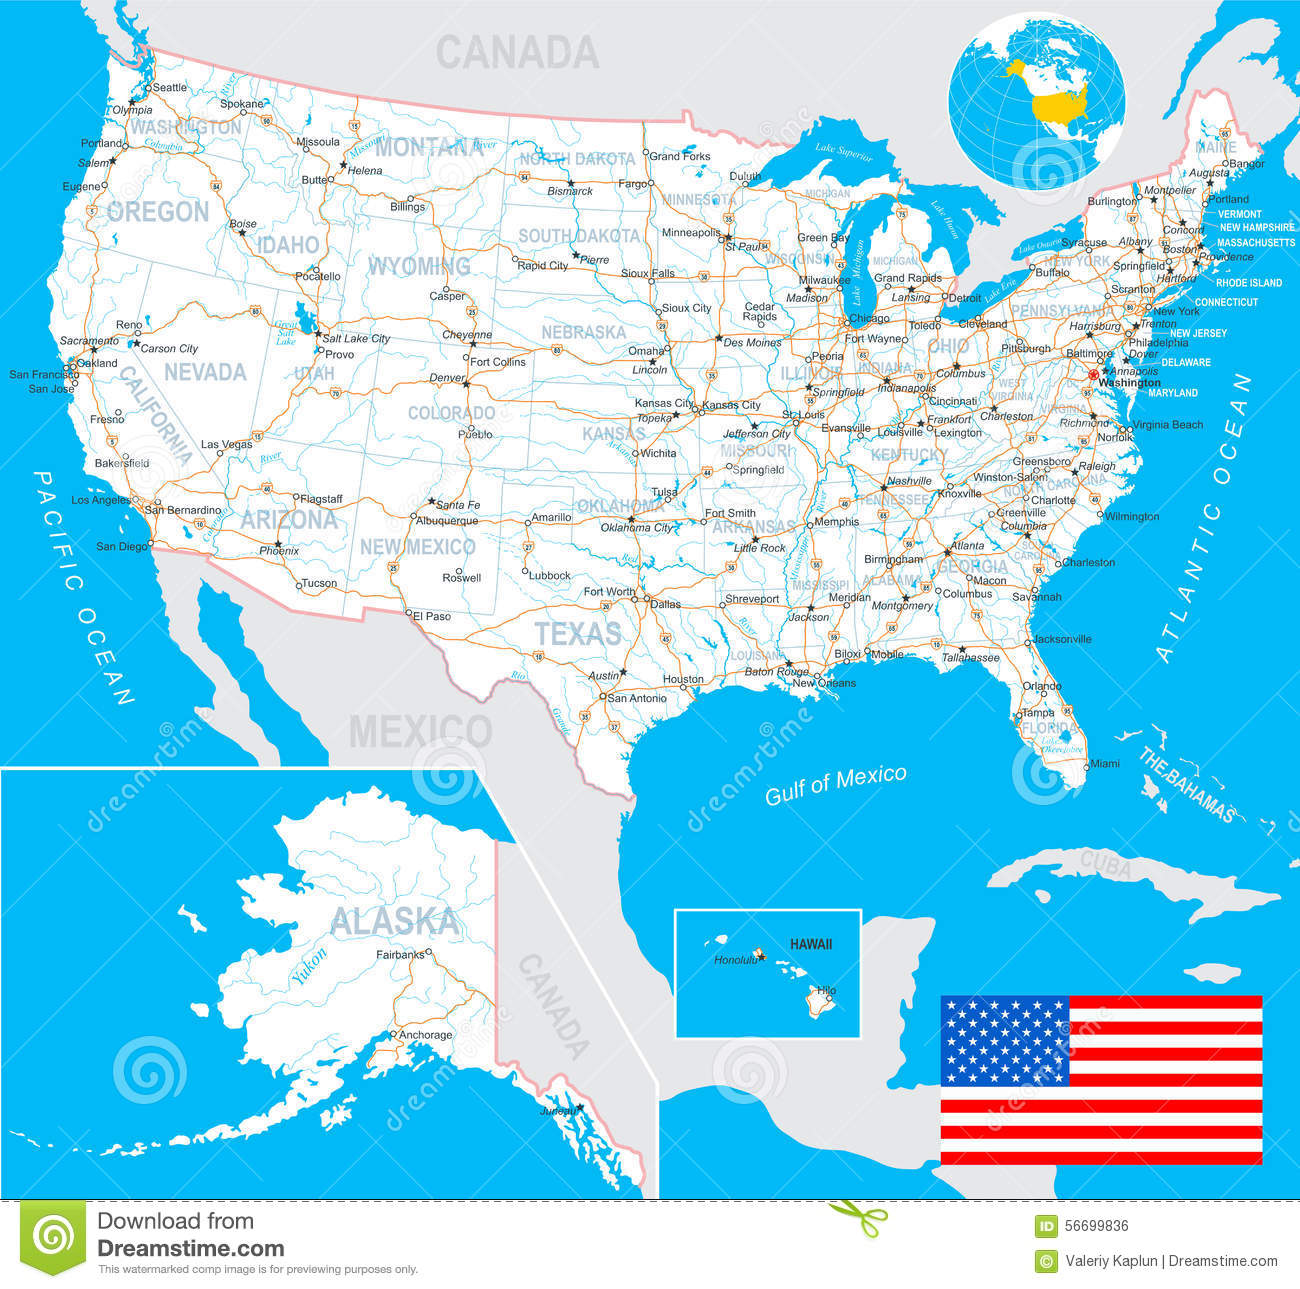 United States USA Map Flag Navigation Labels Roads - Us map with labels